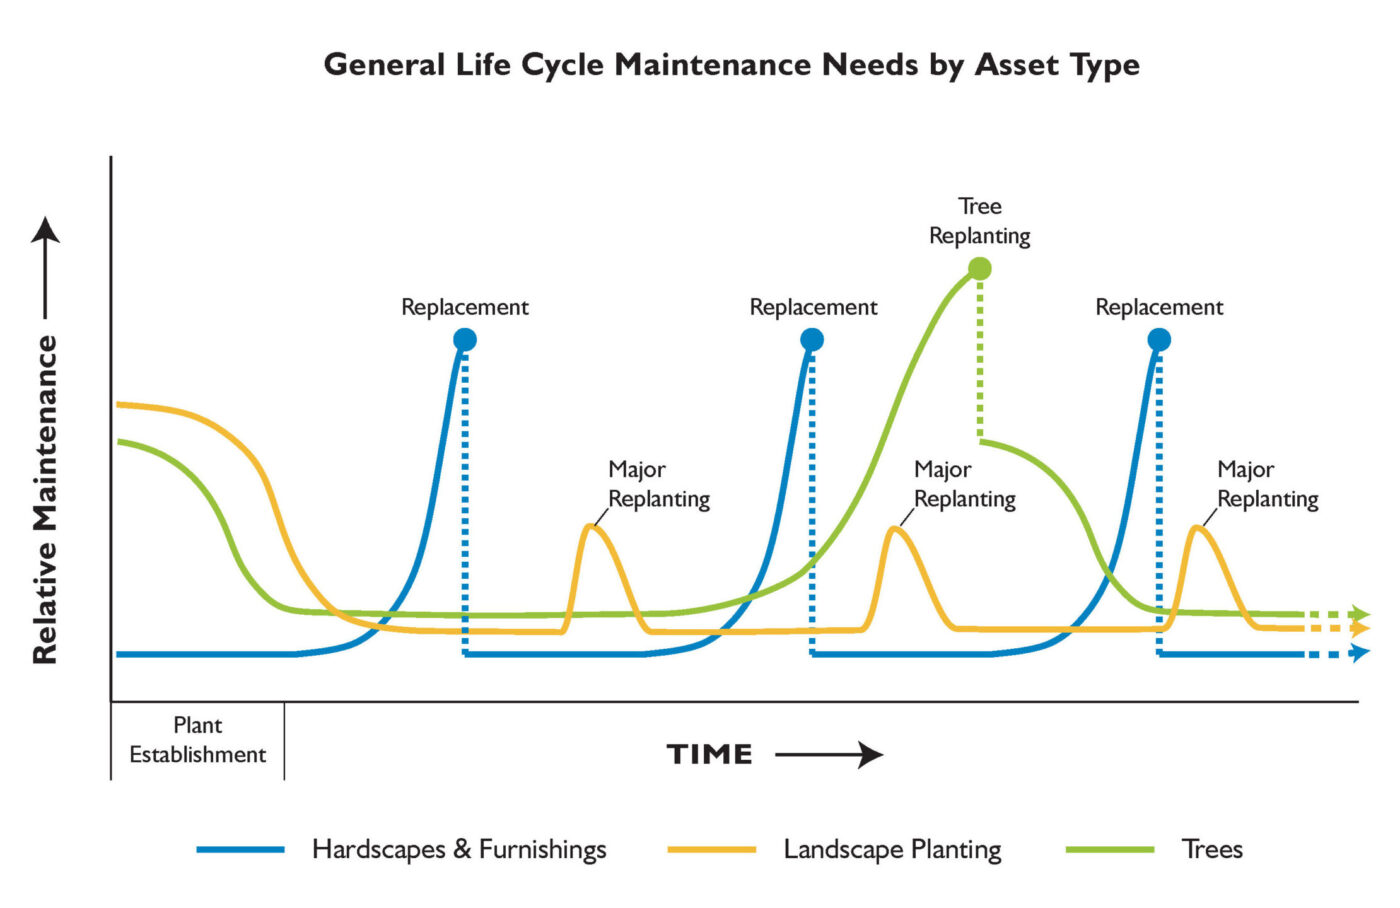 A chart showing how the maintenance needs of assets change over time/the life cycle of the asset.